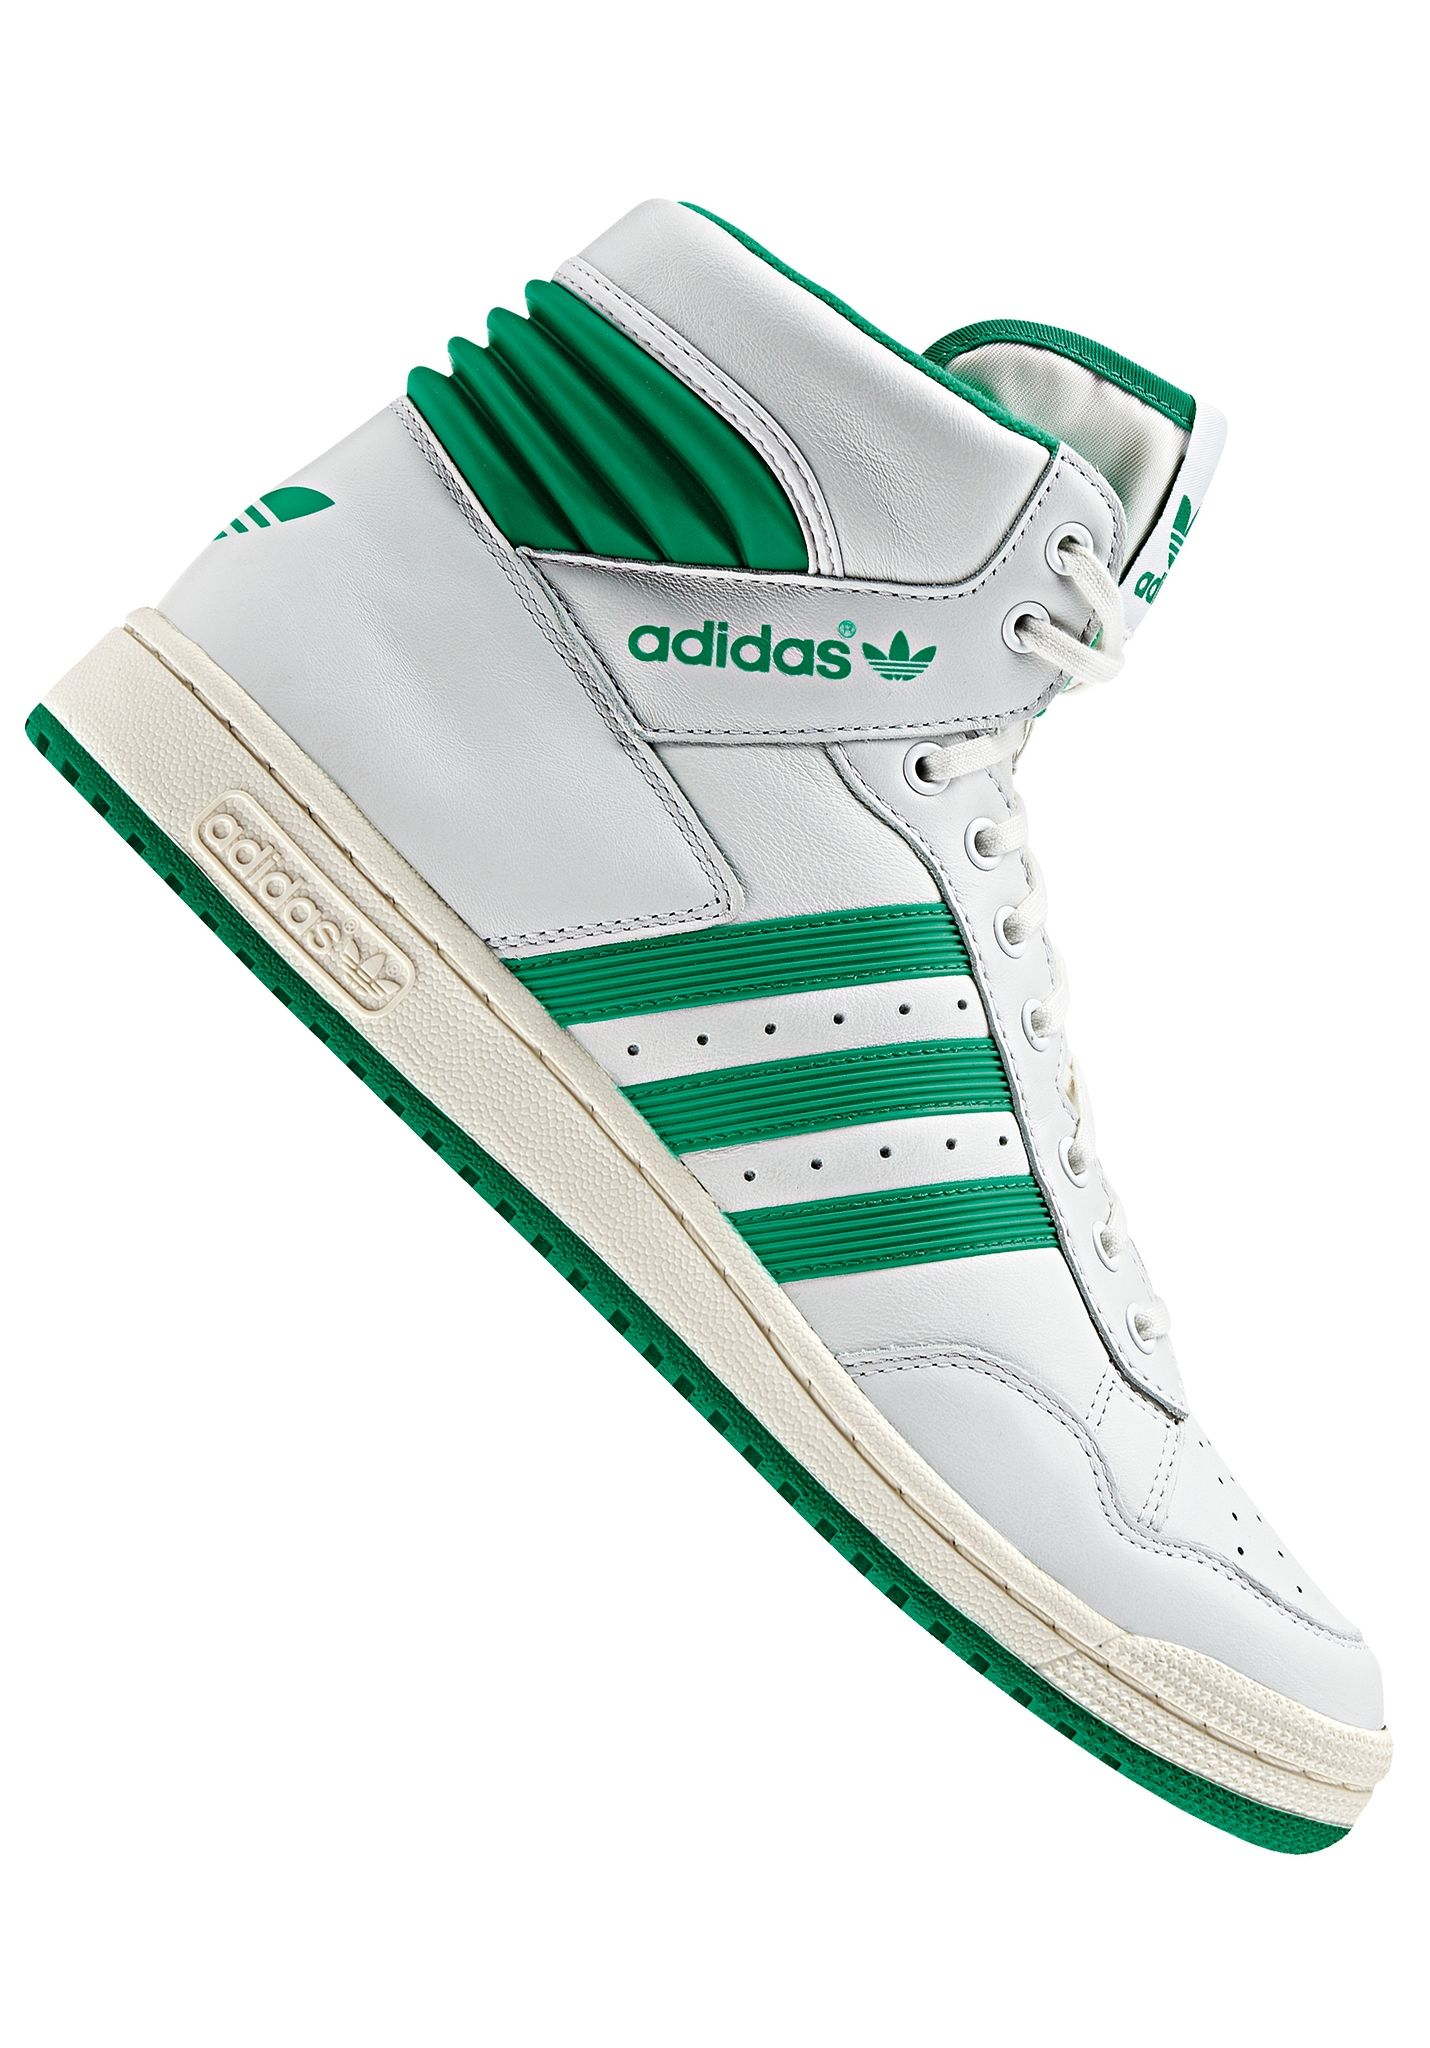 info for 707a2 909de adidas pro conference hi uomo dqy913366 blu  adidas pro conference hi  sneaker per uomo verde planet sports